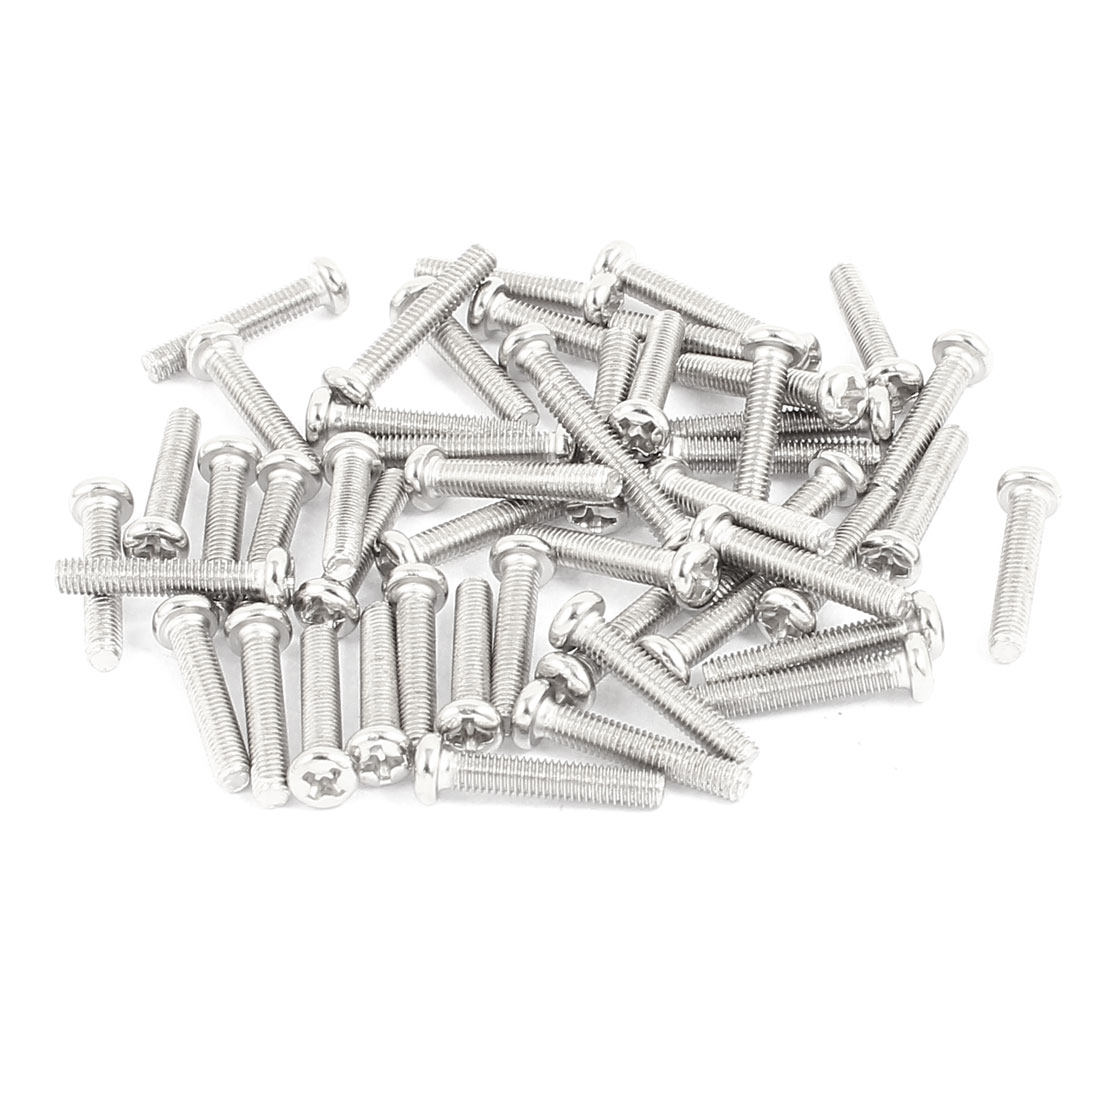 50 Pcs M3x16mm Stainless Steel Round Head Phillips Machine Screws Bolts